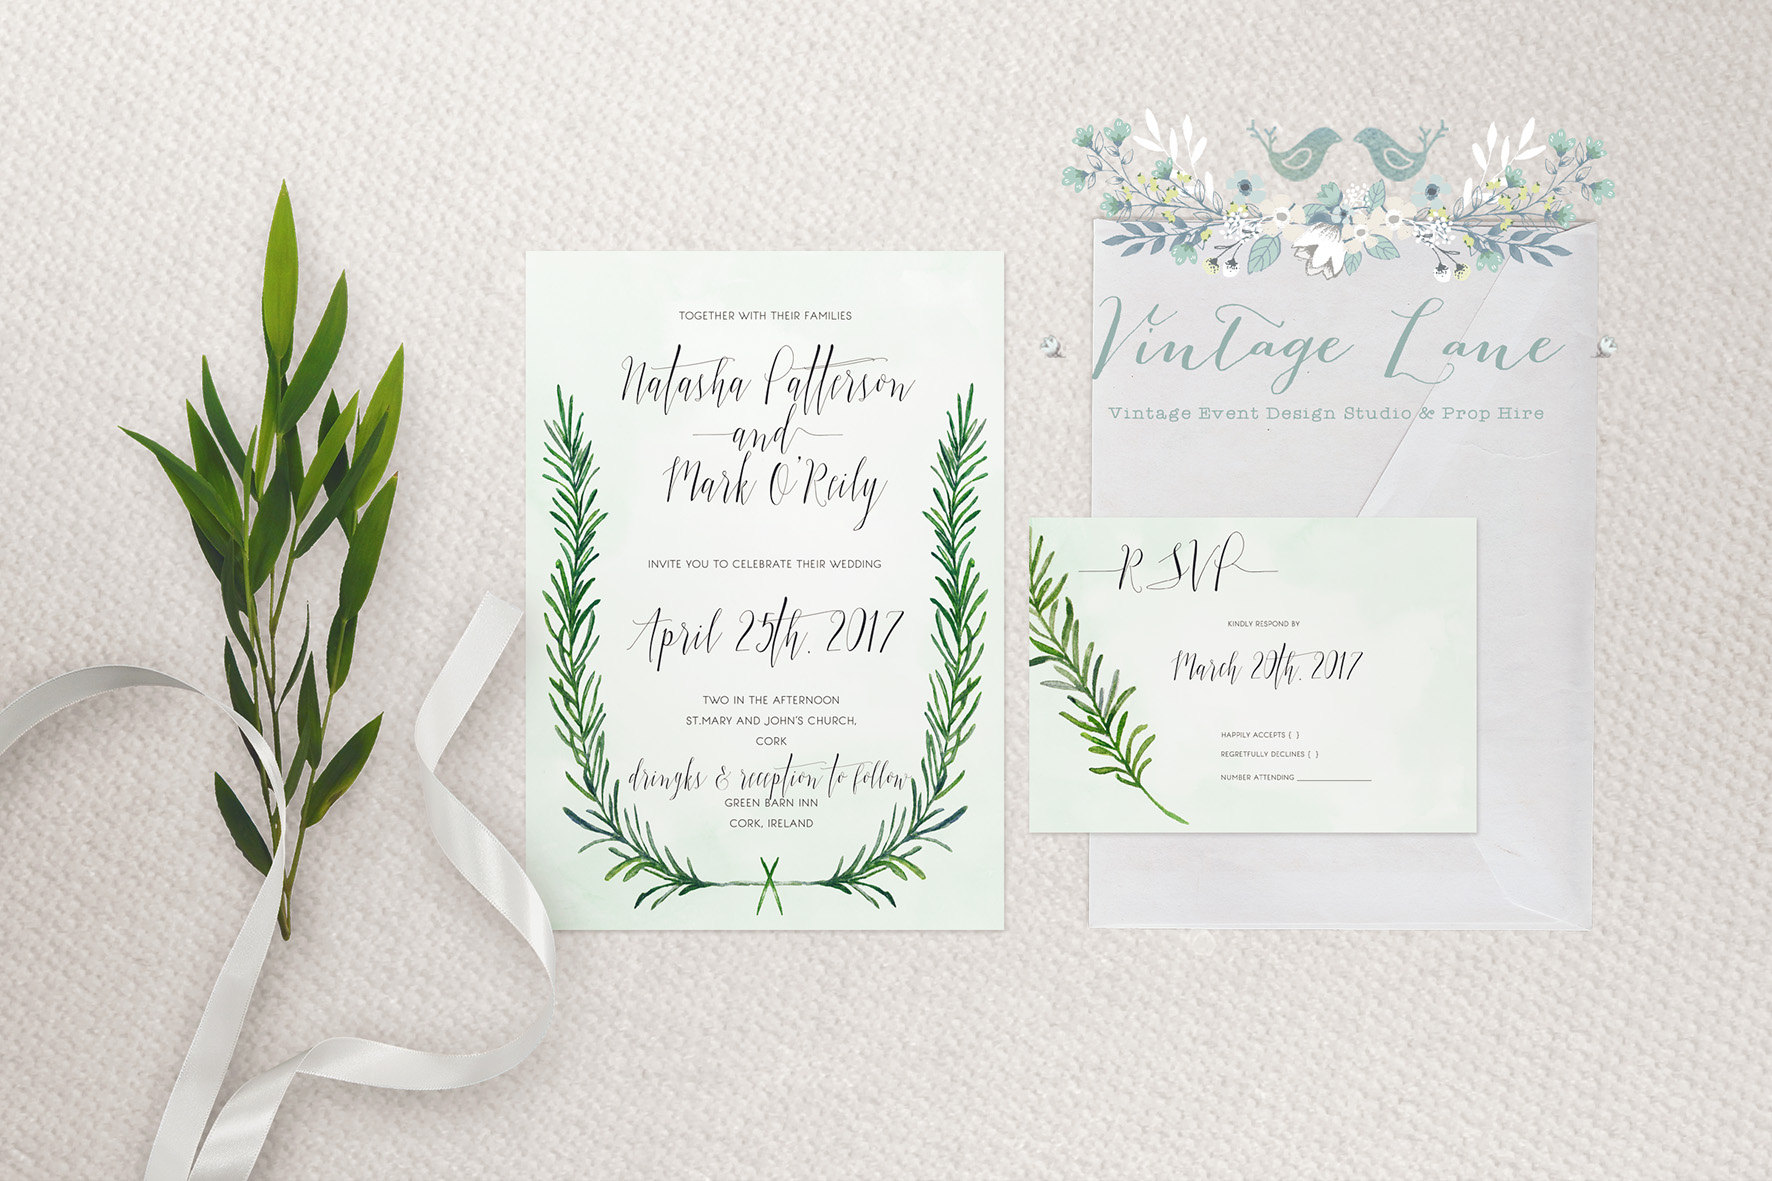 Rosemary wedding invitations Ireland Cork wedding invites Kate Kosareva designs Vintage Lane studio designs Invitations Cork Ireland